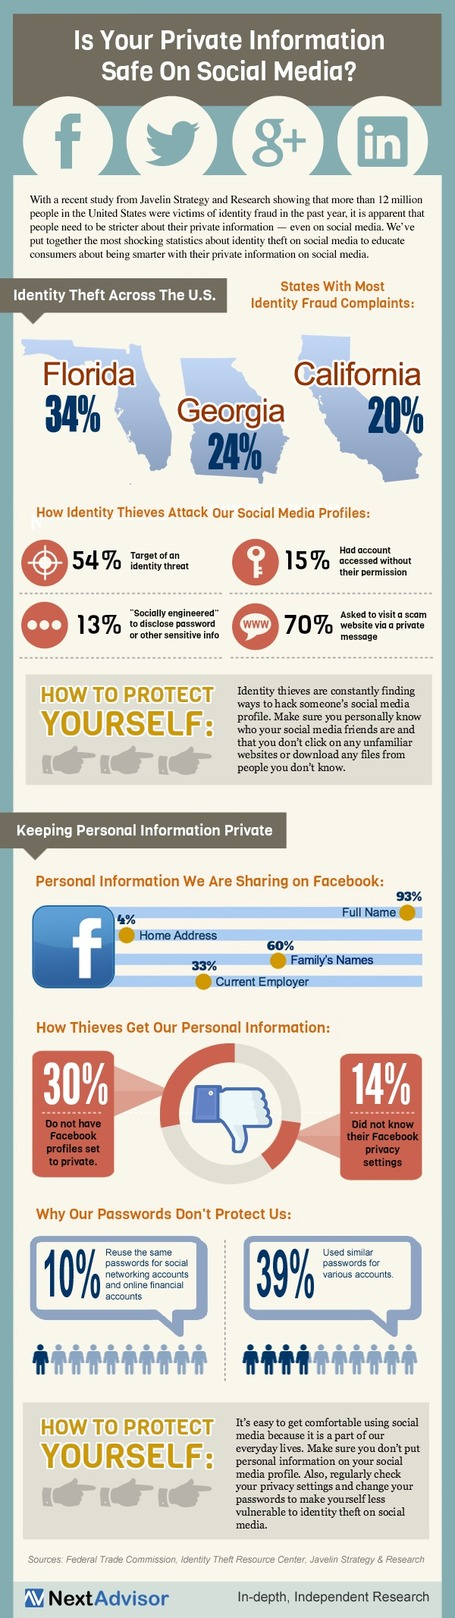 Do You Reveal Too Much About Yourself On Social Media? [INFOGRAPHIC] - AllTwitter | AtDotCom Social media | Scoop.it